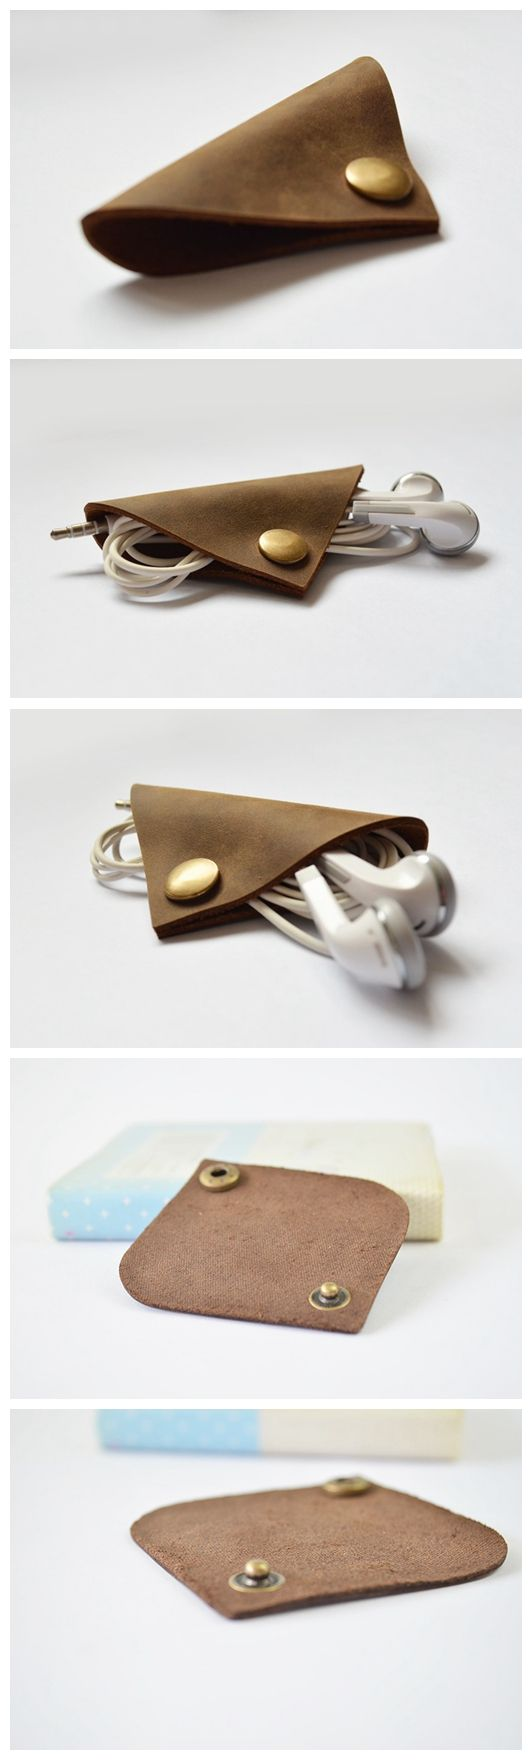 Handmade Genuine Natural Leather Earphone Holder, Earphone Organizer, Cable Keeper D08